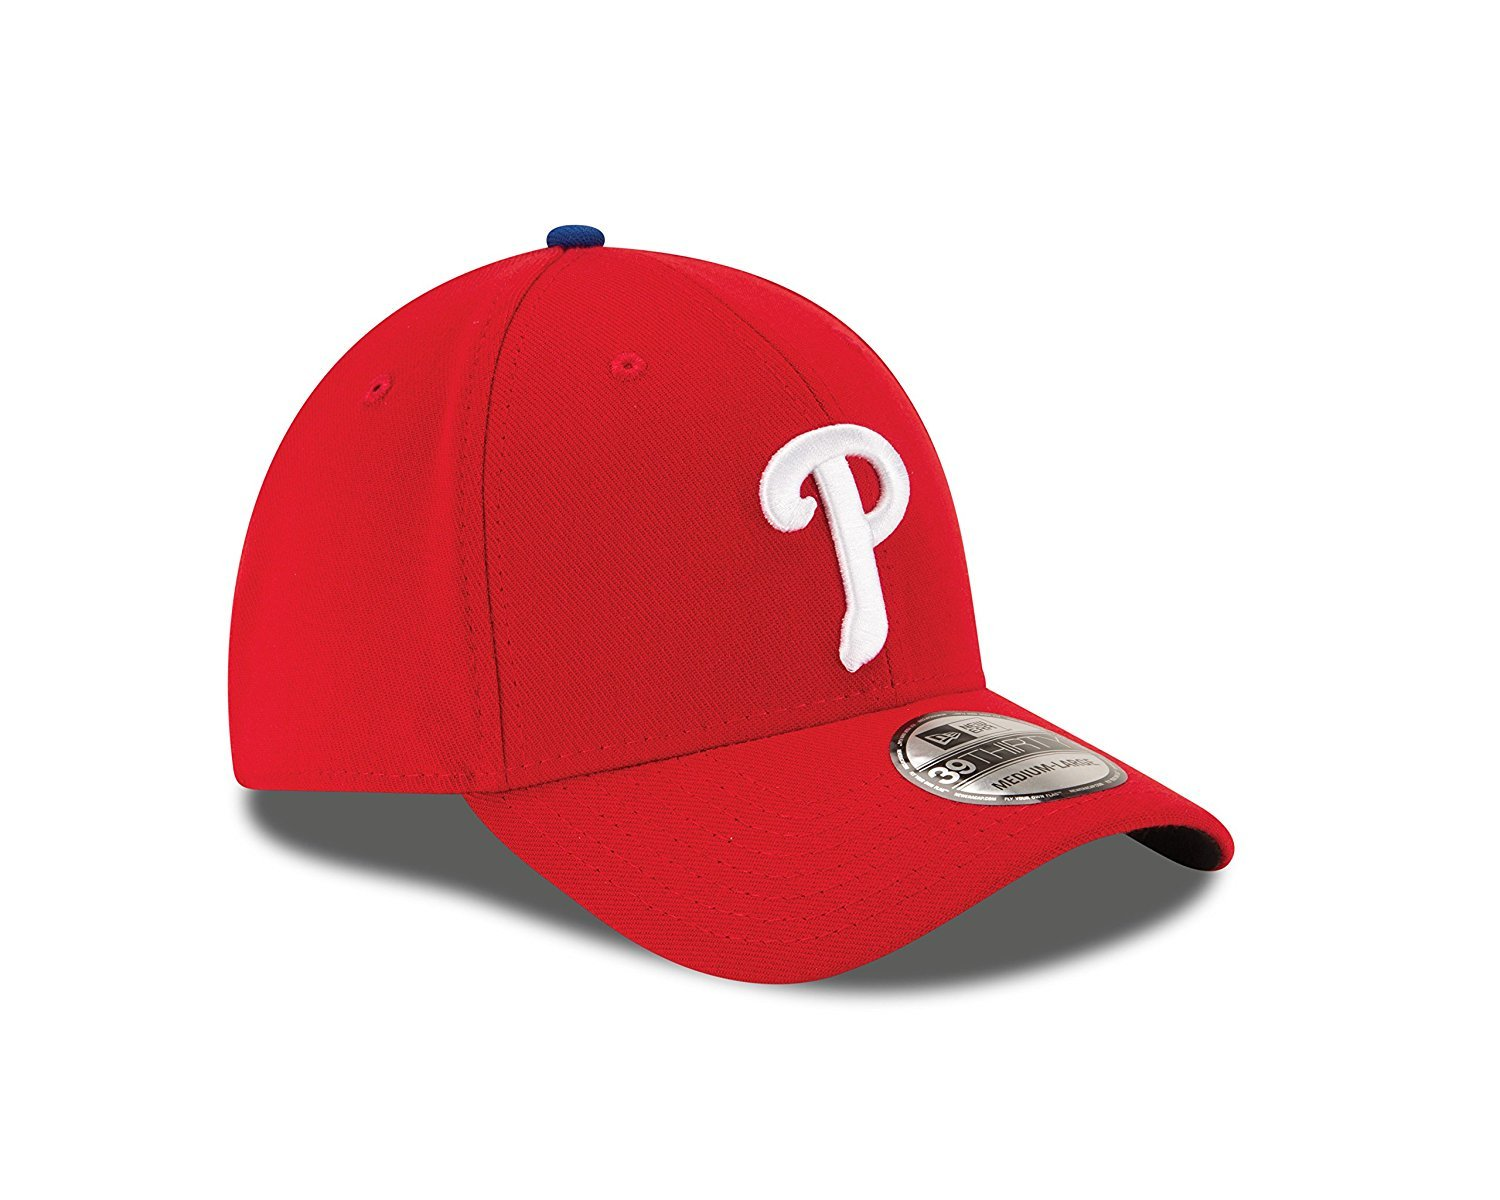 New Era MLB Philadelphia Phillies Team Classic Game 39Thirty Stretch Fit Cap, Red, Small/Medium